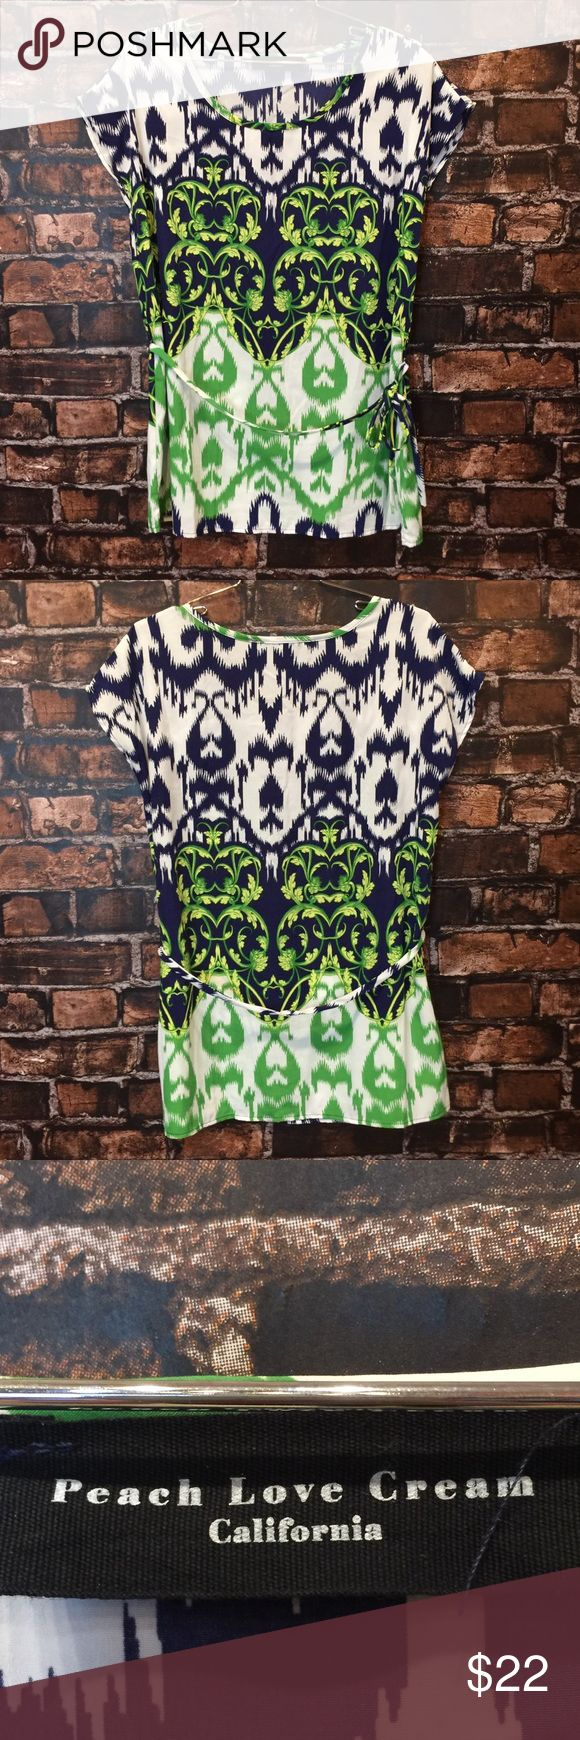 Peach Love Cream women's top! Size medium Green and navy printed top! Has tie belt. Good condition! (WT 1476) Peach Love Cream Tops Blouses